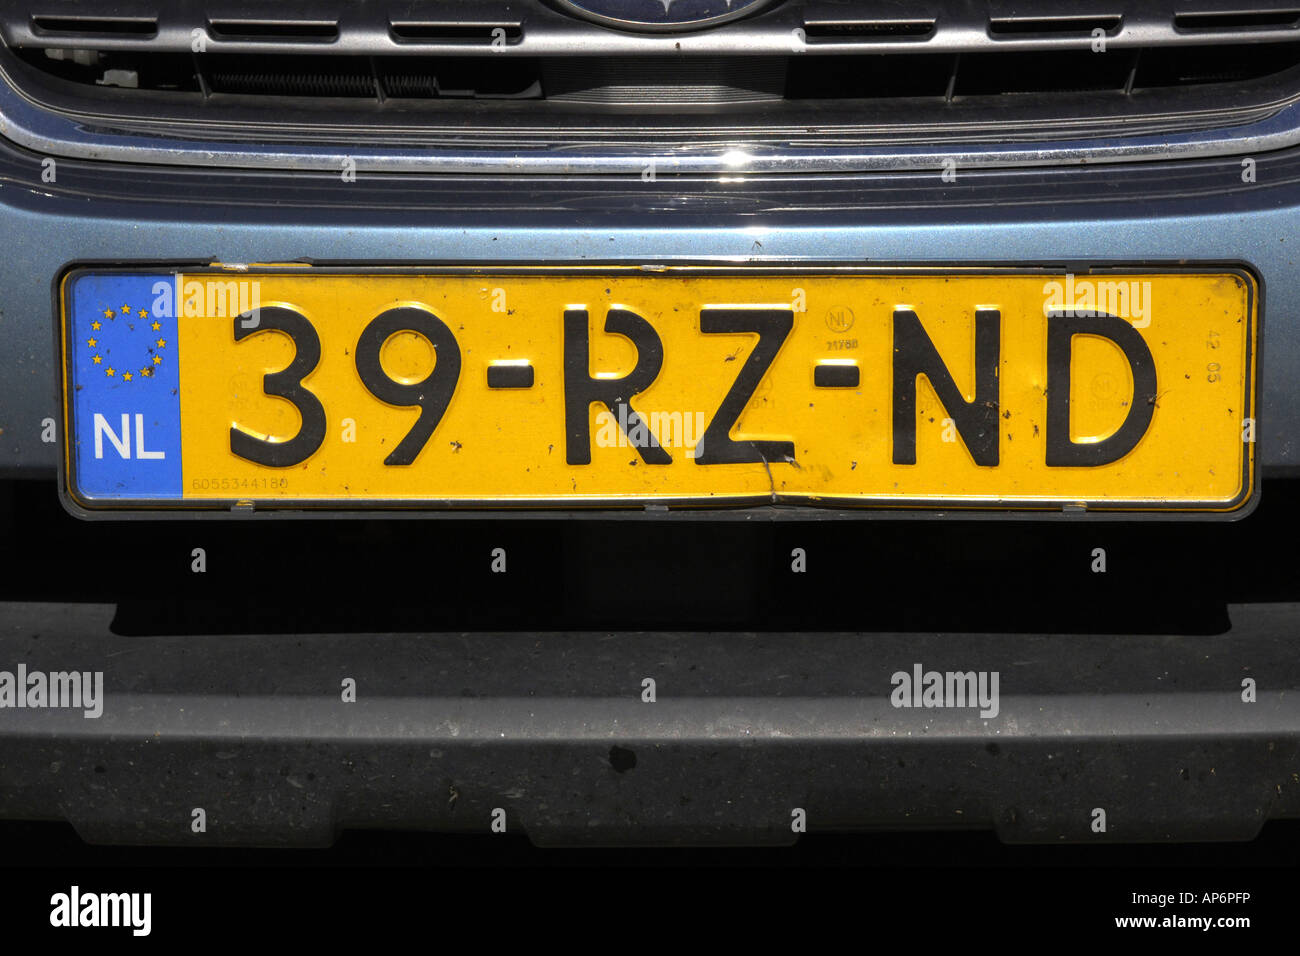 A Dutch Vehicle Numberplate Recongizable By The Euro Symbol And The